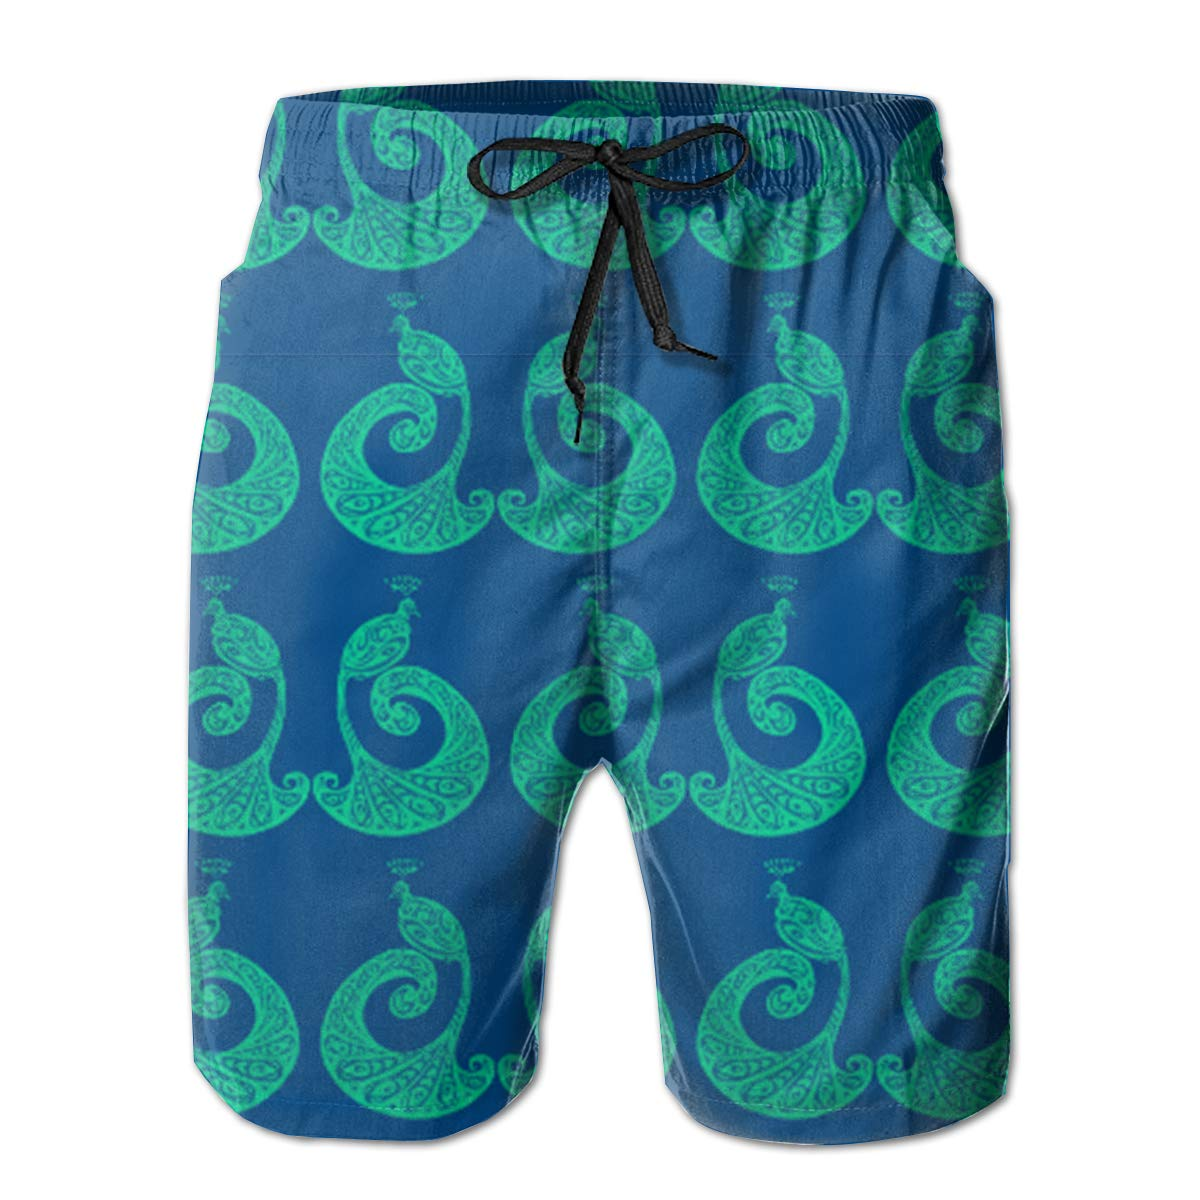 Peacocks Blue Green Quick Dry Beach Board Shorts with Mesh Lining FASUWAVE Mens Swim Trunks Be Proud